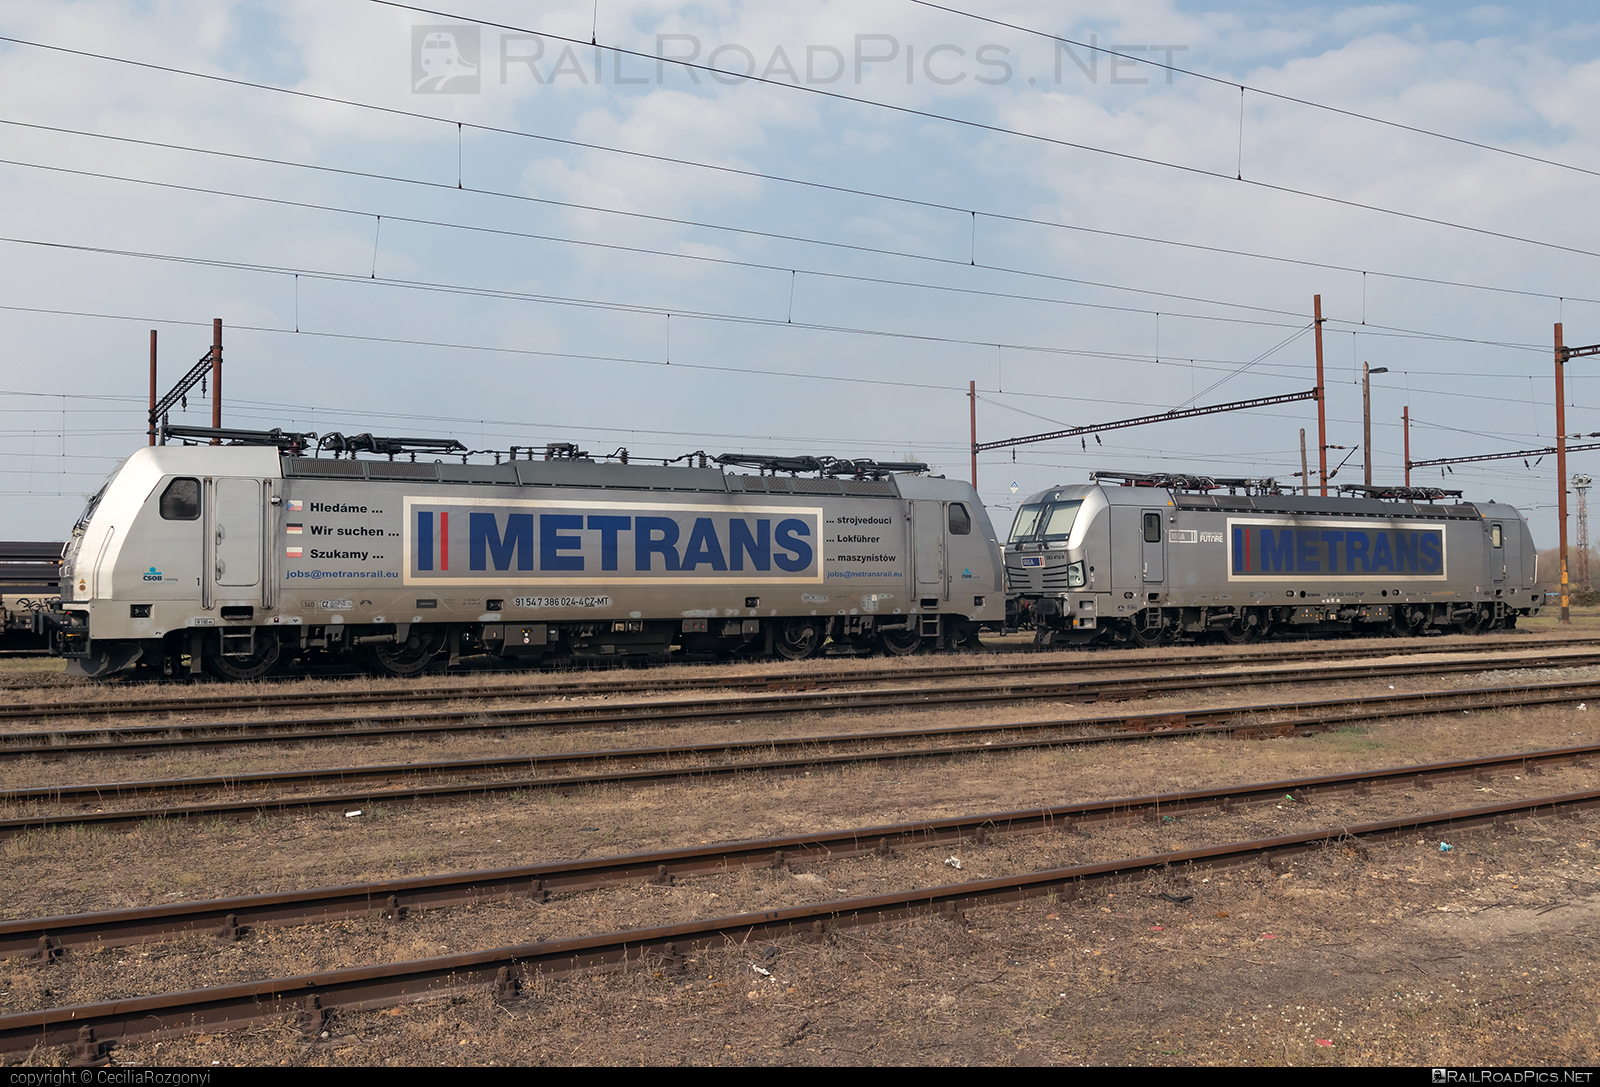 Bombardier TRAXX F140 MS - 386 024-4 operated by METRANS Rail s.r.o. #bombardier #bombardiertraxx #hhla #metrans #metransrail #traxx #traxxf140 #traxxf140ms